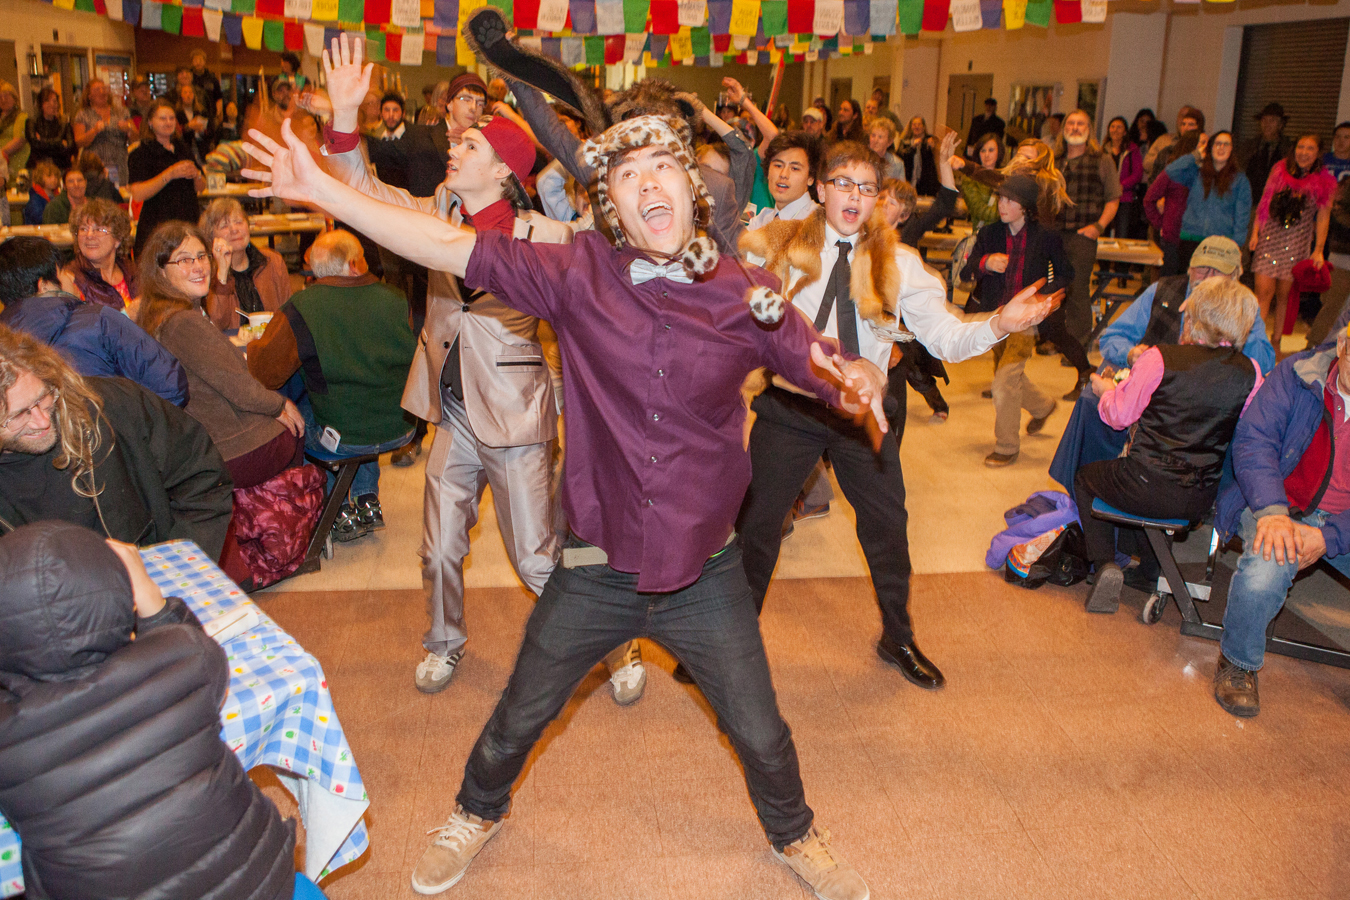 Ben Westphal, a senior at Homer High School, surprises the crowd at the Homer Outdoor Film Festival by leading the HoWL Skits 'n Scats crew in a flashmob dance number amid the audience. Westphal choreographed two dance numbers for HoWL's event.-Photos by Don Pitcher